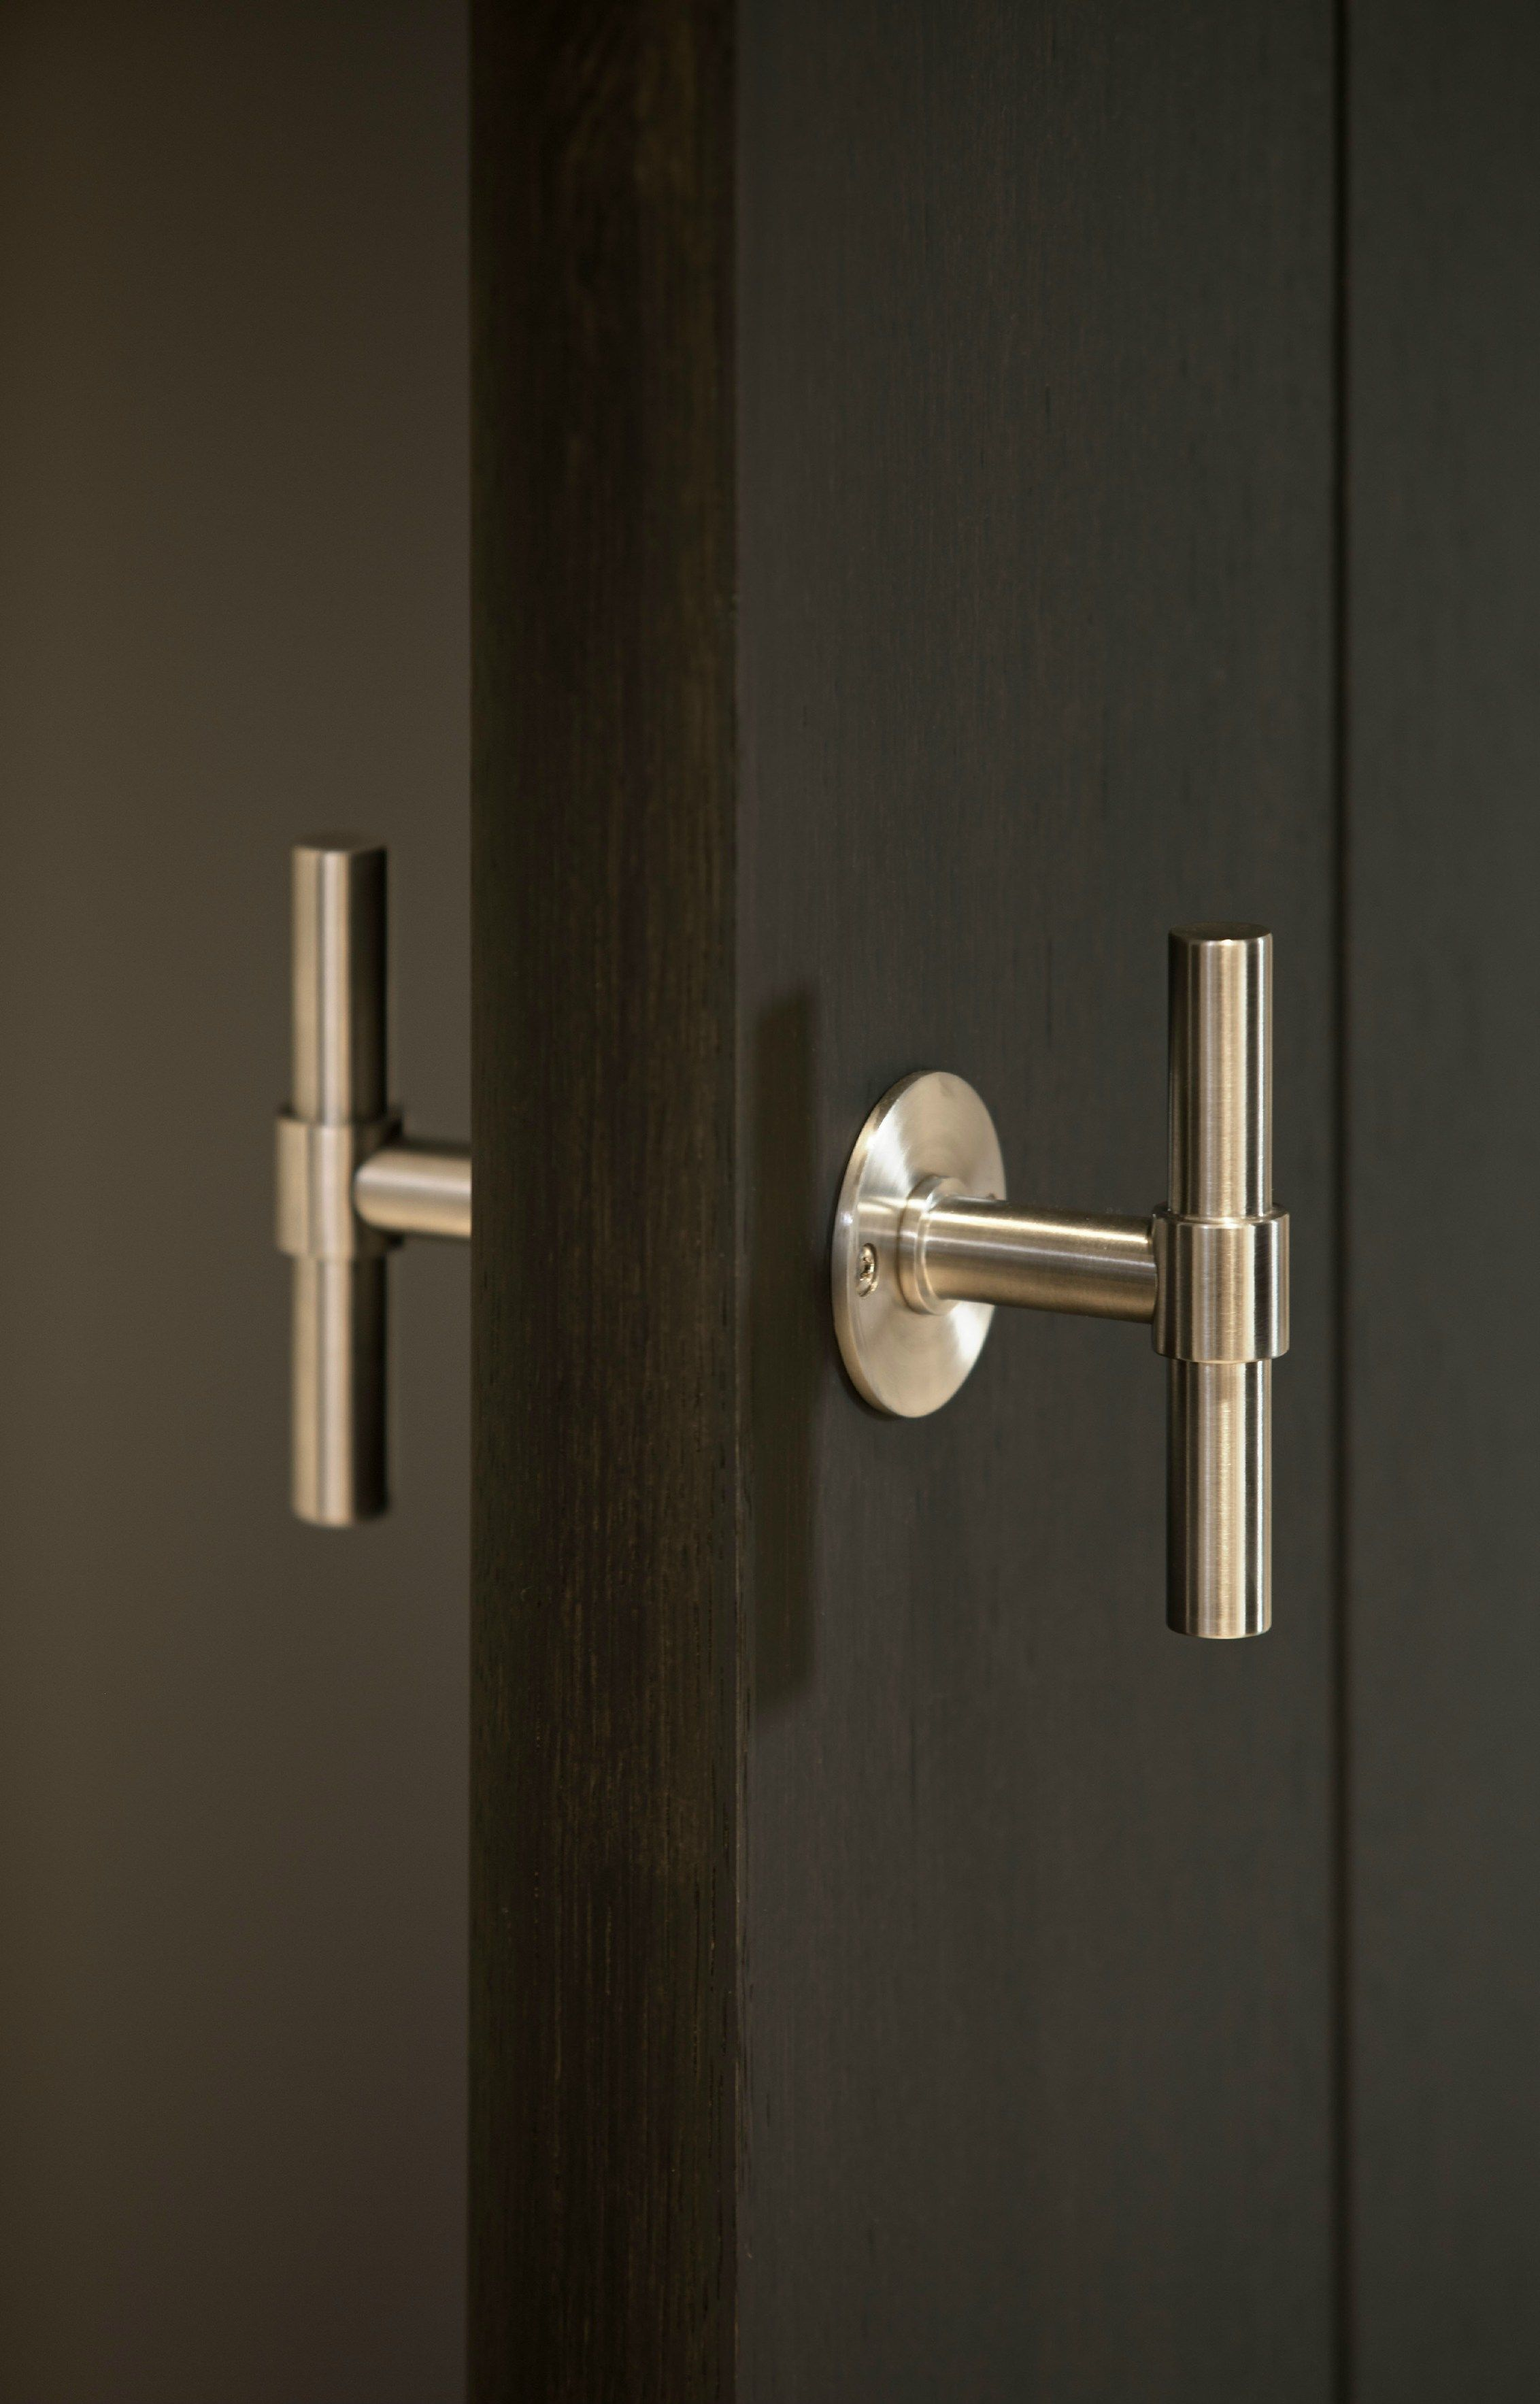 Stainless steel door knob ONE Series by FORMANI